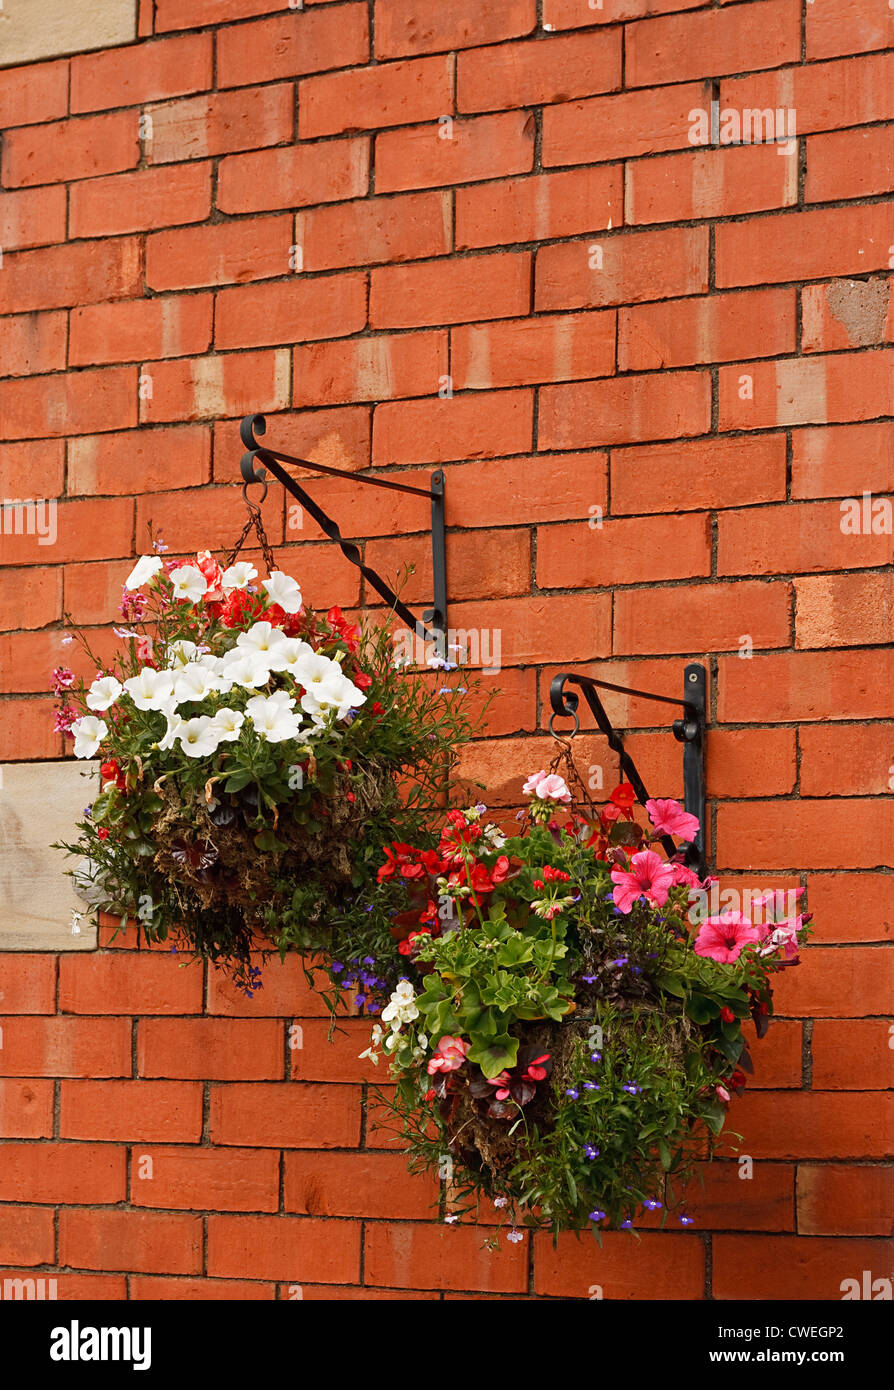 Hanging baskets overflow with flowers bracketed on a traditional red brick wall - Stock Image